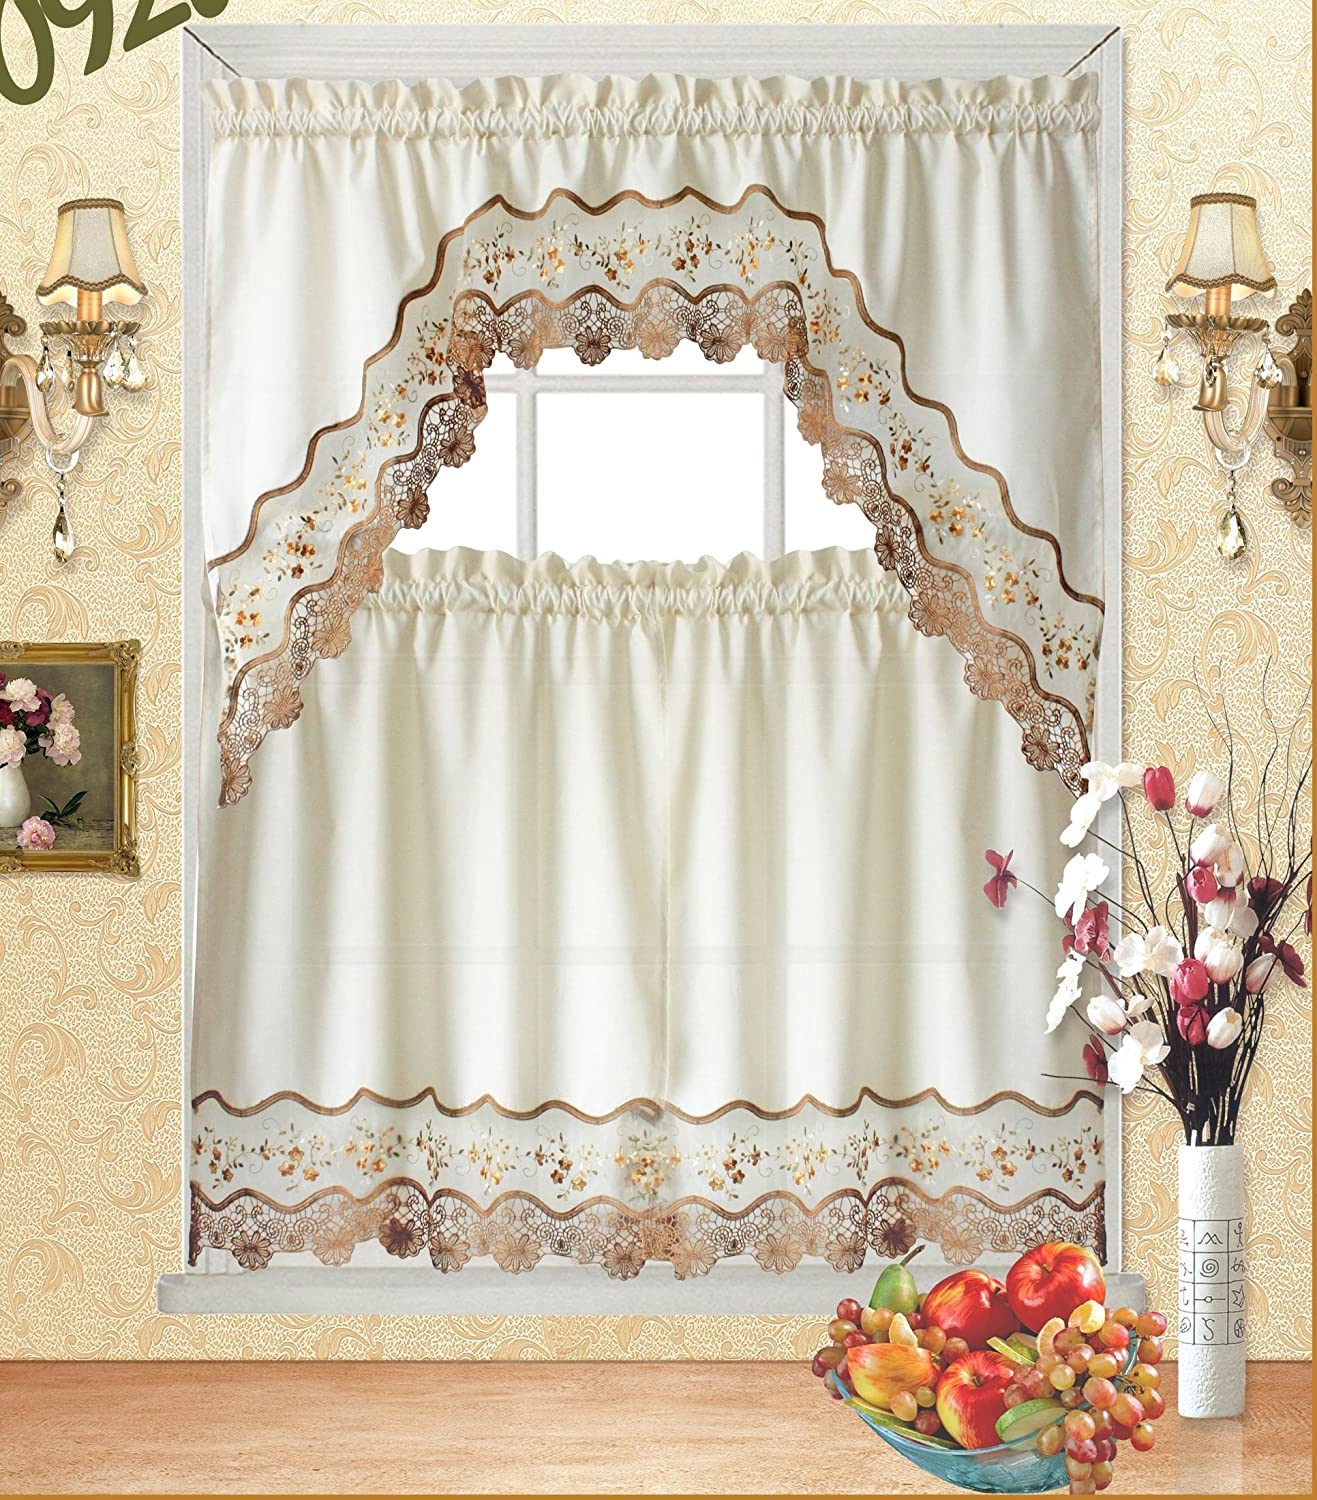 """Fancy Collection 3pc Beige with Embroidery Floral Kitchen/Cafe Curtain Tier and Valance Set 001092 (60"""" x 38"""", Gold/Beige/Beige)"""